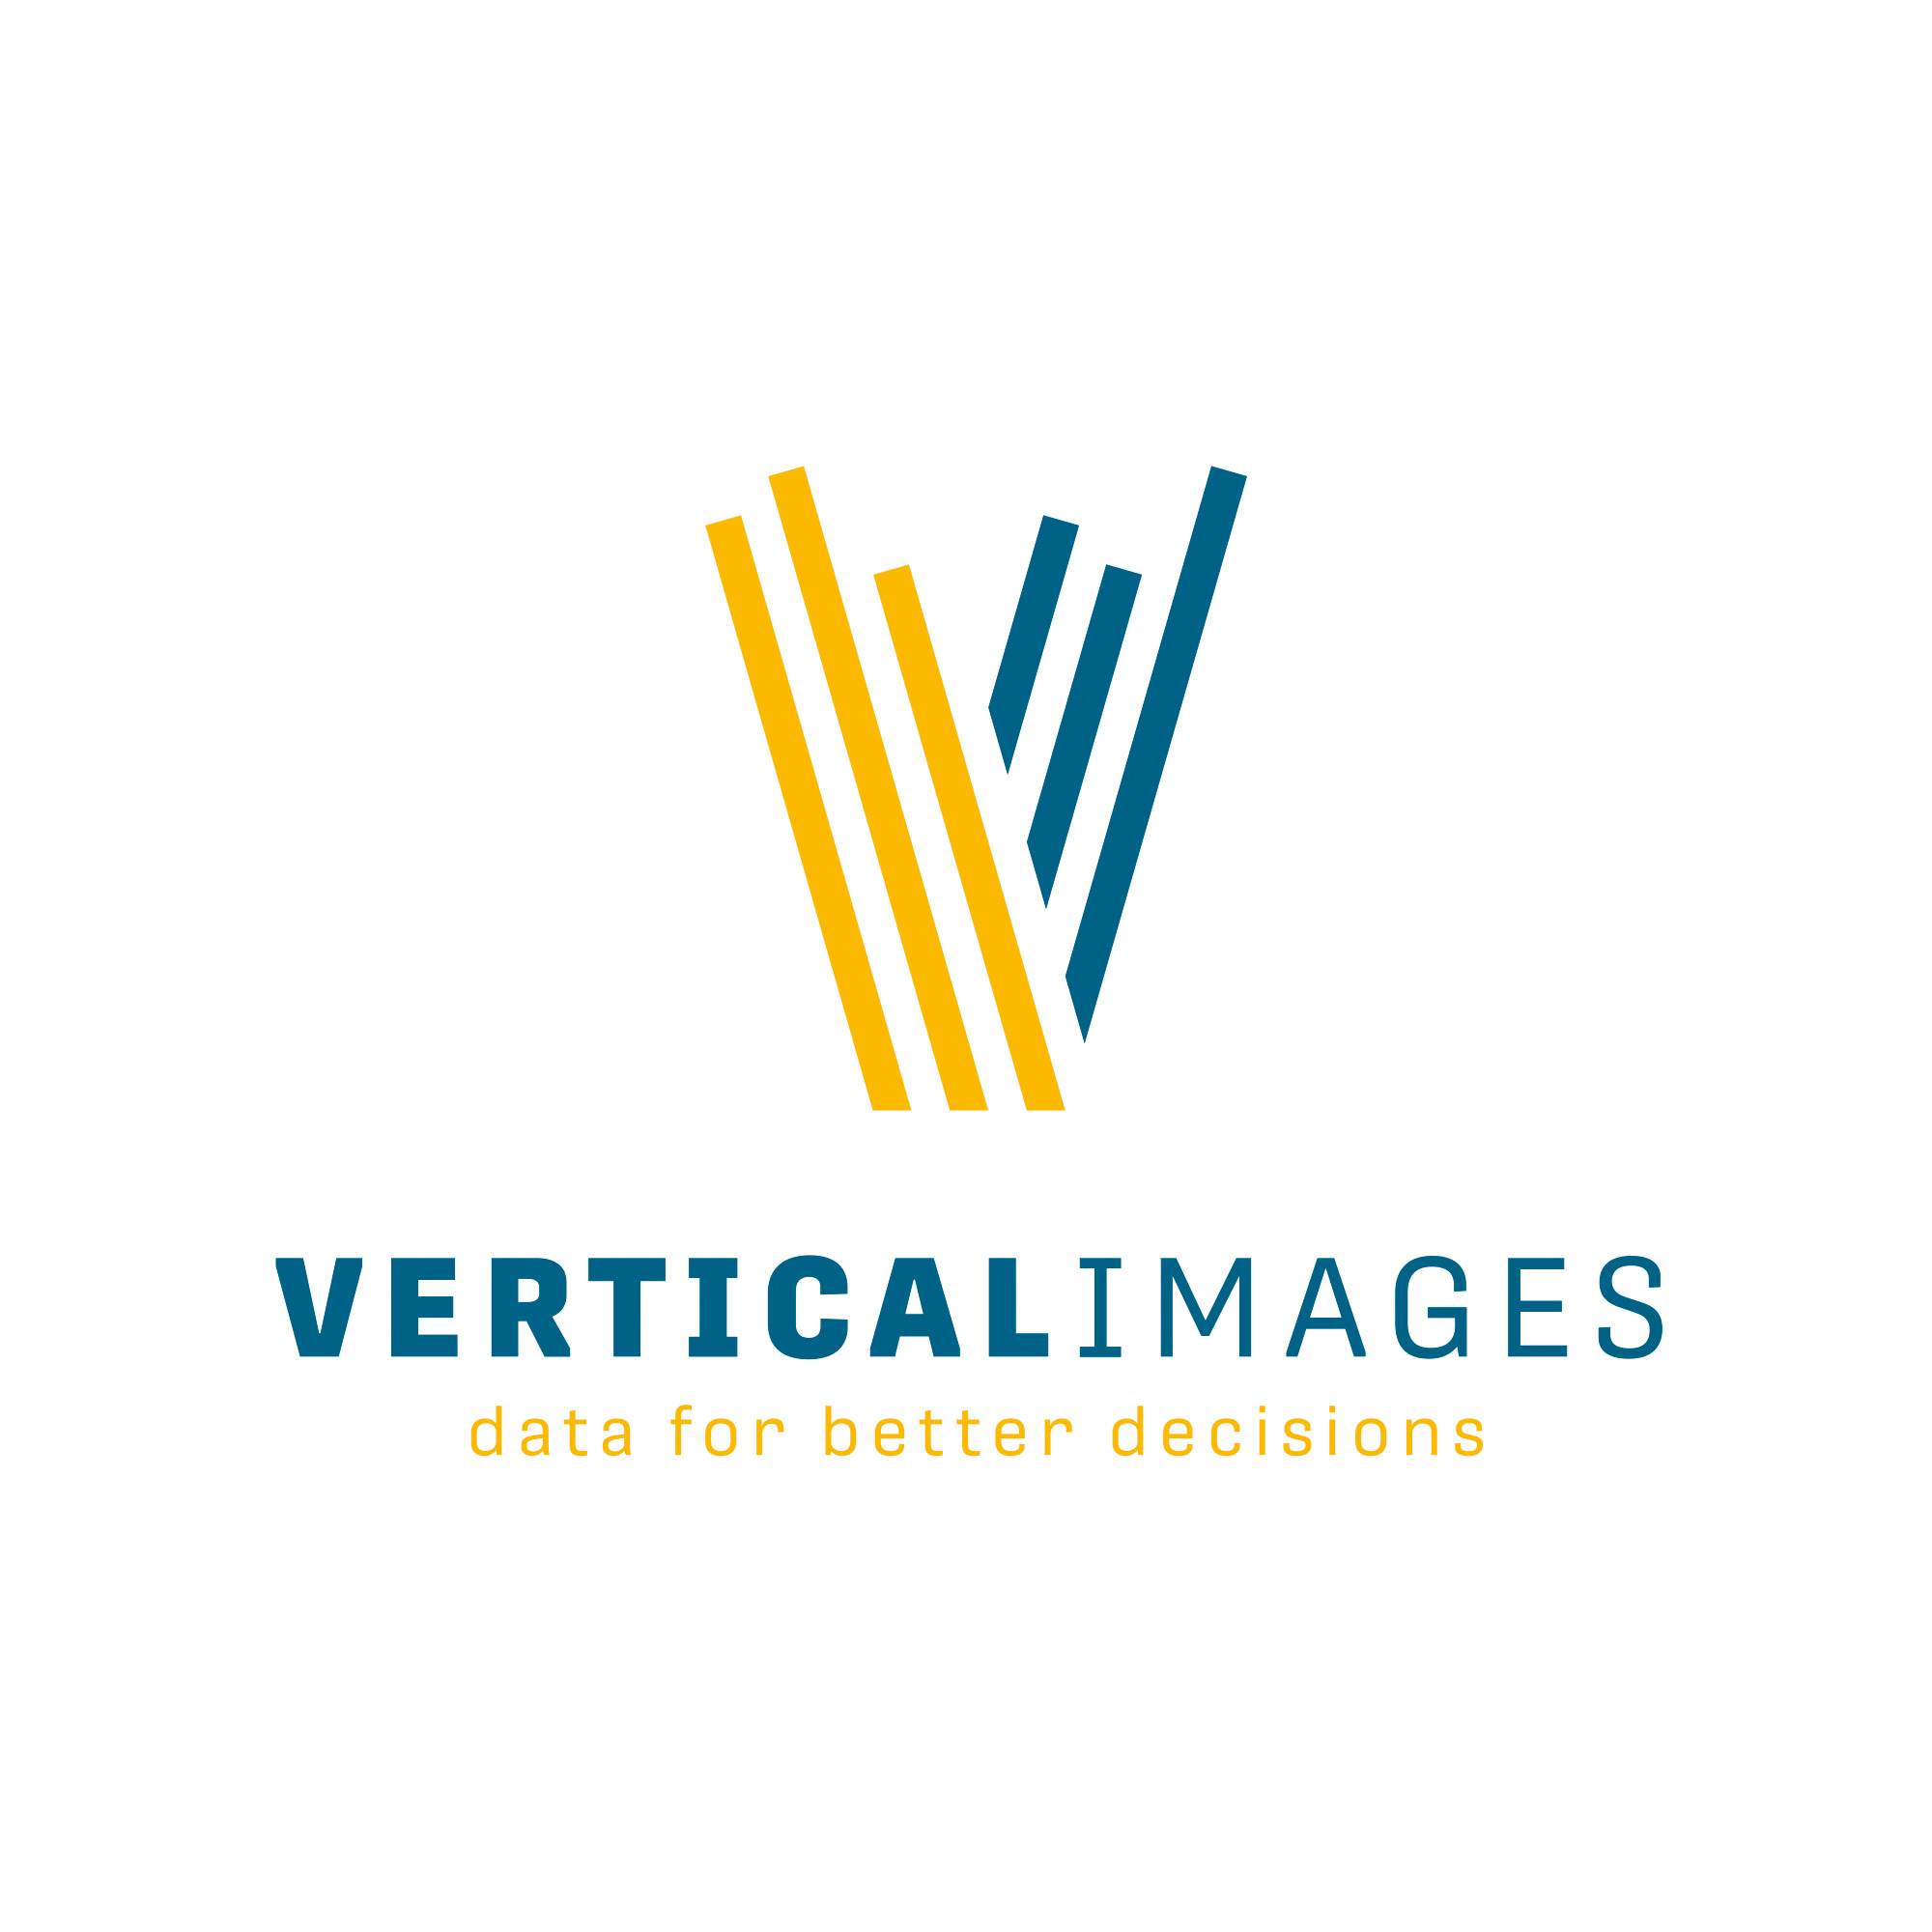 [album/Products_Model_Product/119/Vertical_IMAGES_logo_4c_pos.jpg]